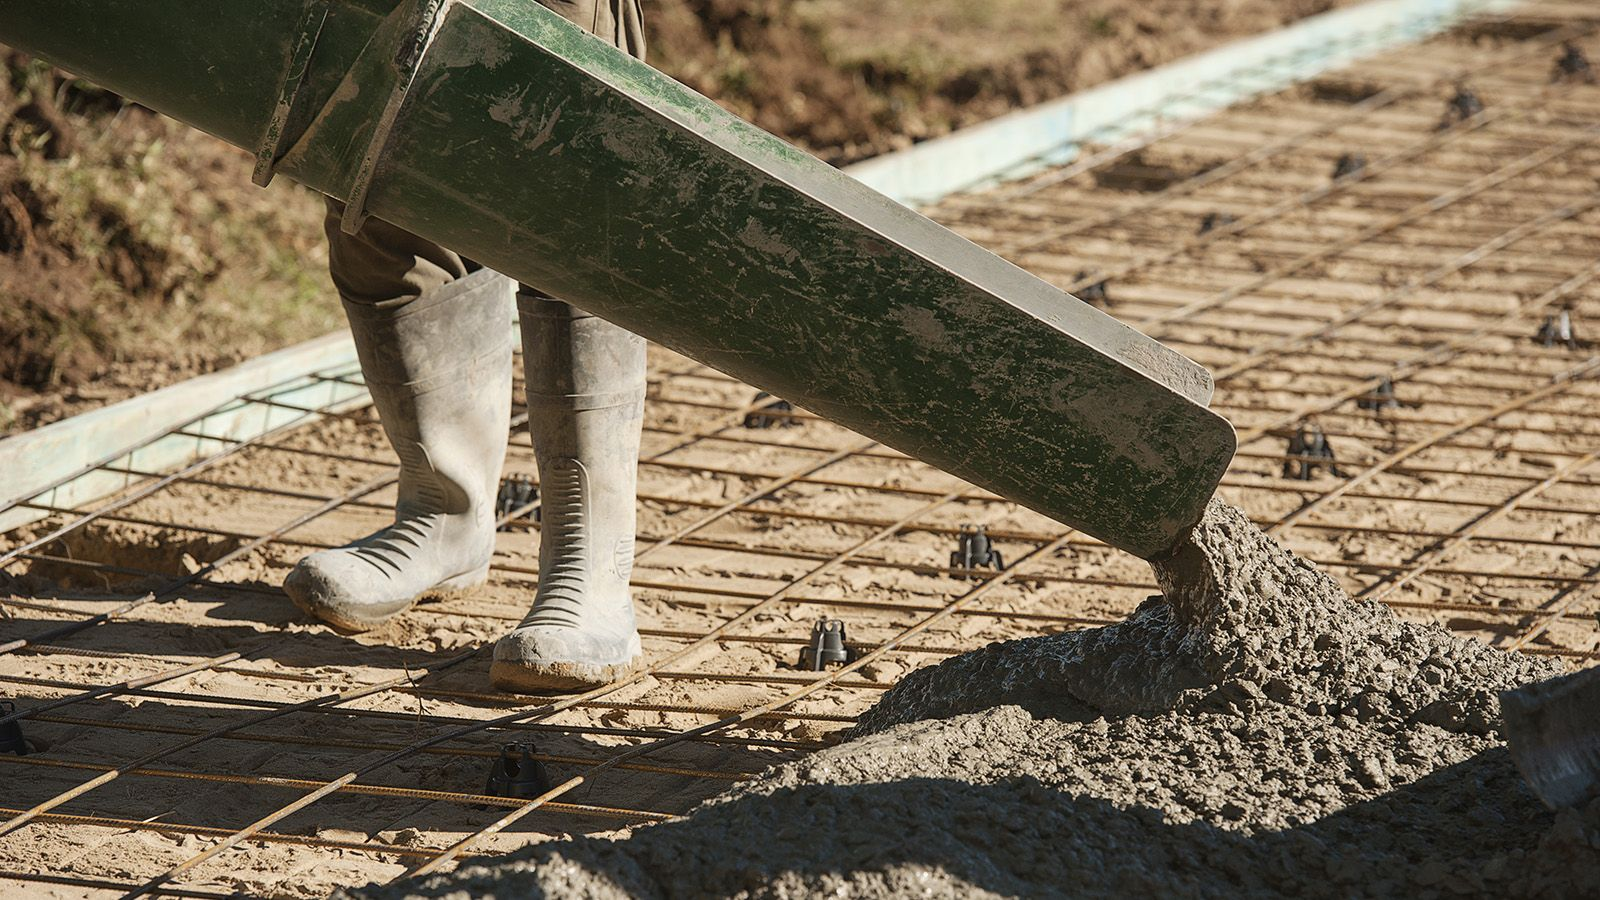 A person wearing gumboots using machinery to pour cement into an area prepared for cement banner image